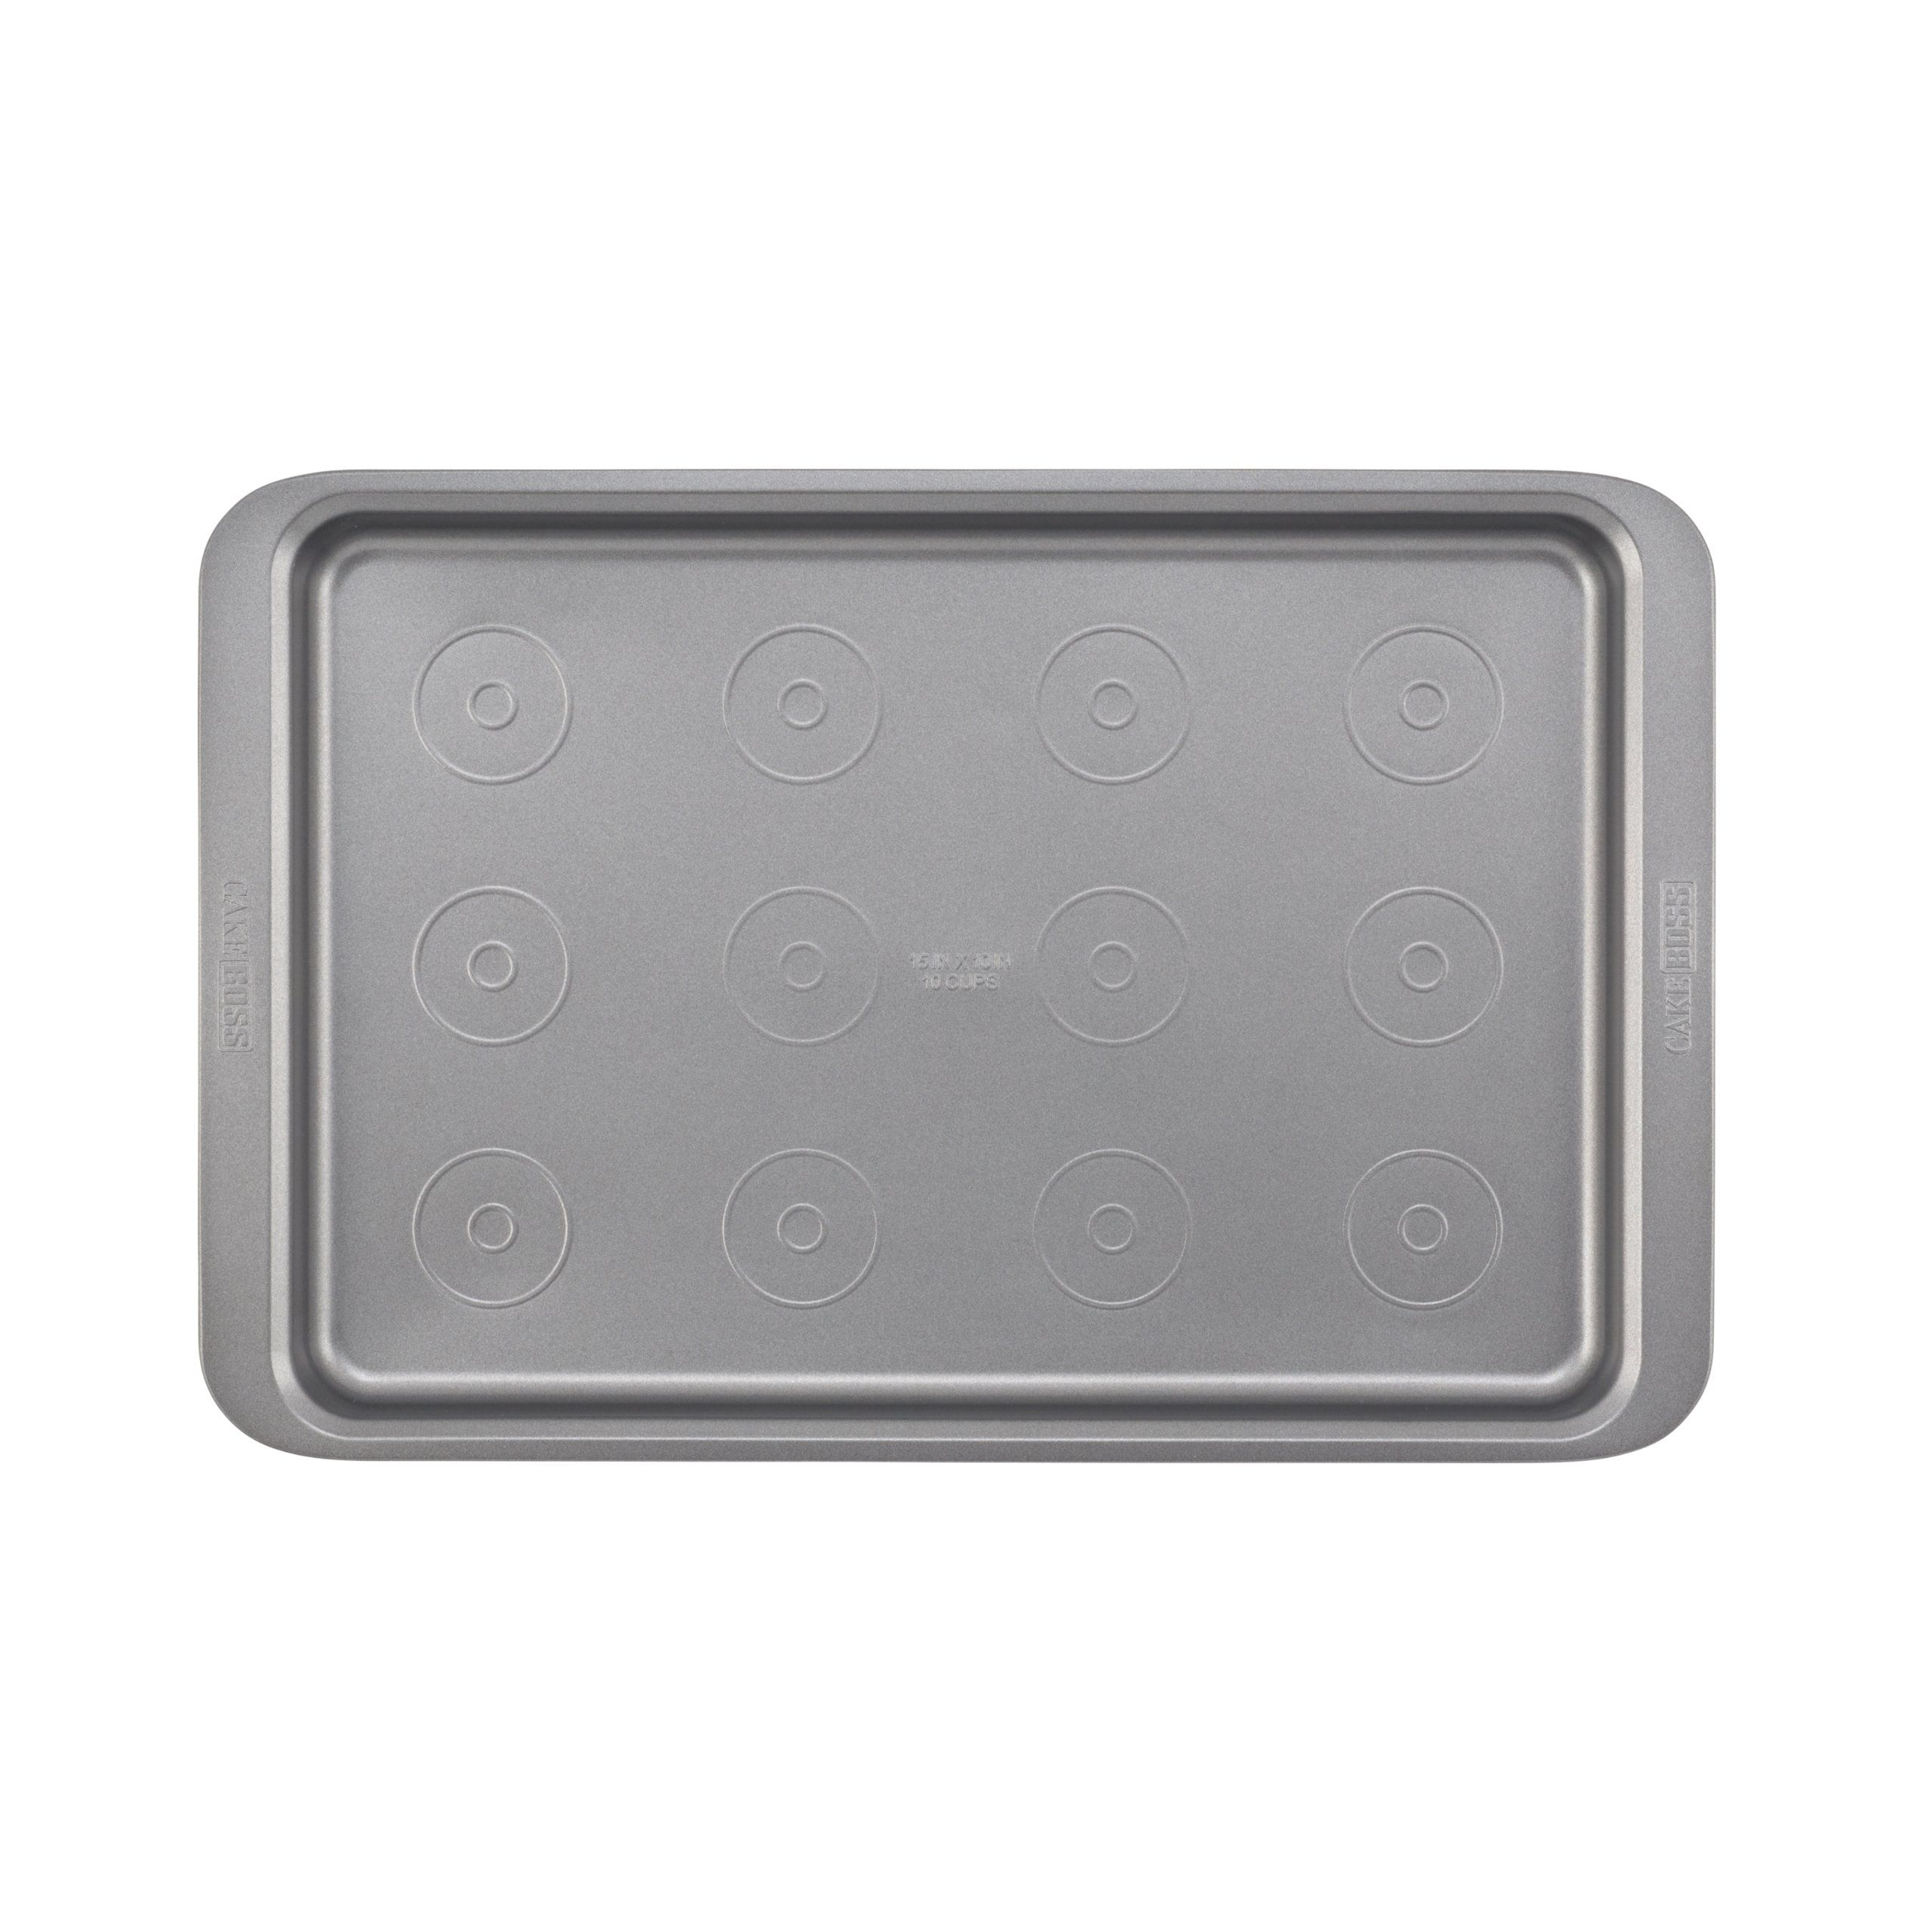 Cake Boss Basics Nonstick Bakeware 10inch By 15inch Cookie Pan Gray Visit The Image Link For More Details Bakingsheet Nonstick Bakeware Pan Nonstick